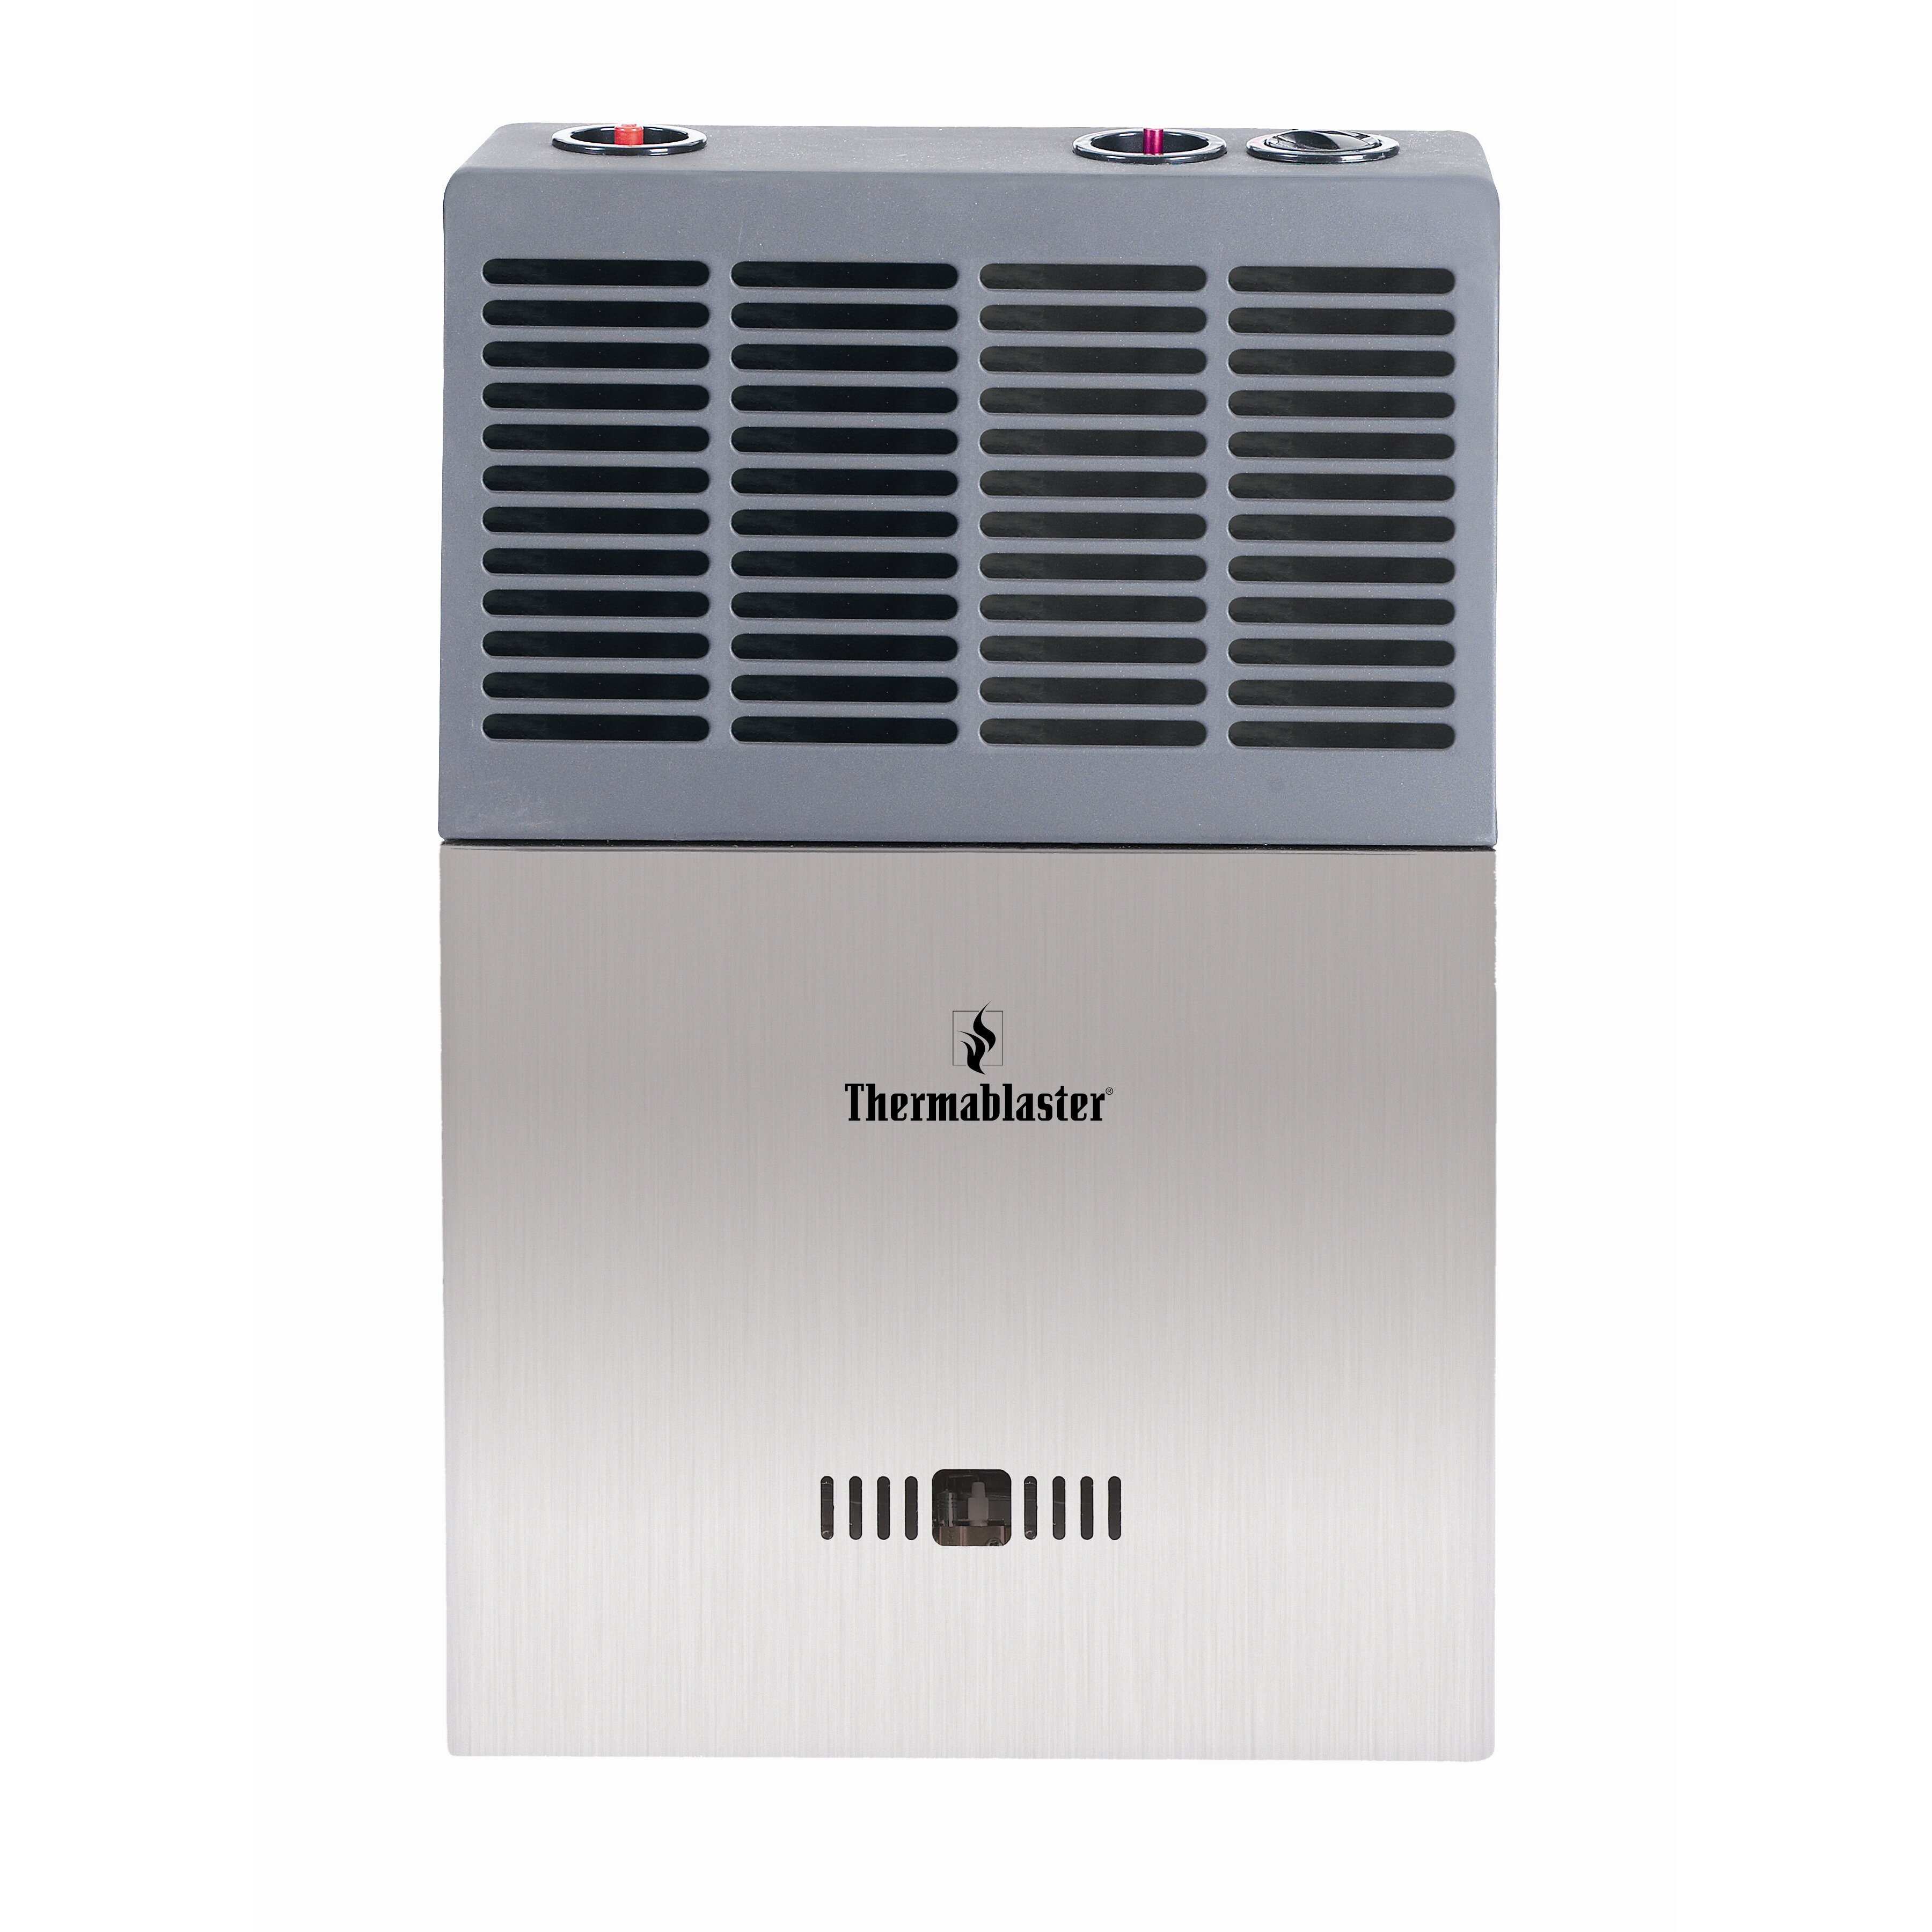 #604249 Thermablaster 10 000 BTU Natural Gas/Propane Vent Free  Recommended 6767 Through The Wall Heater pics with 3600x3600 px on helpvideos.info - Air Conditioners, Air Coolers and more